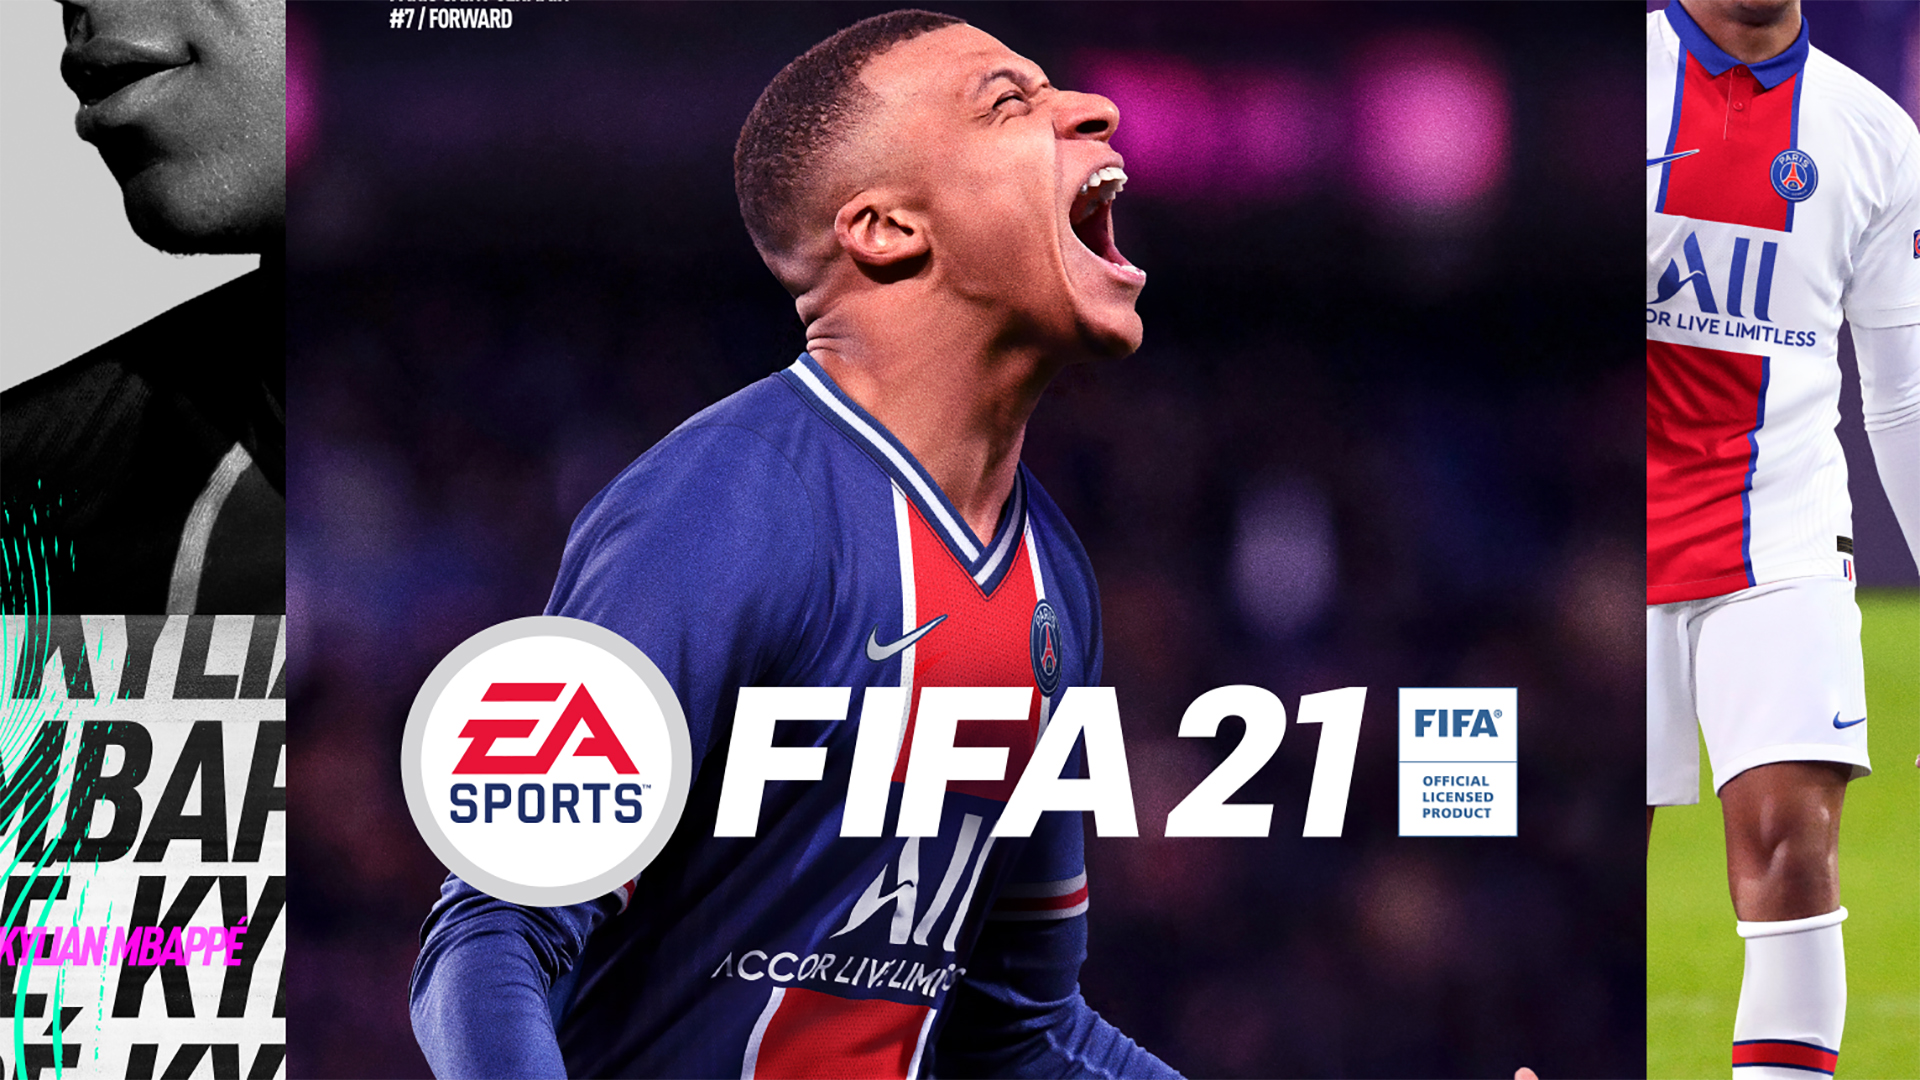 FIFA 21 cover star: Who will be the face of EA Sports' new game? | Goal.com